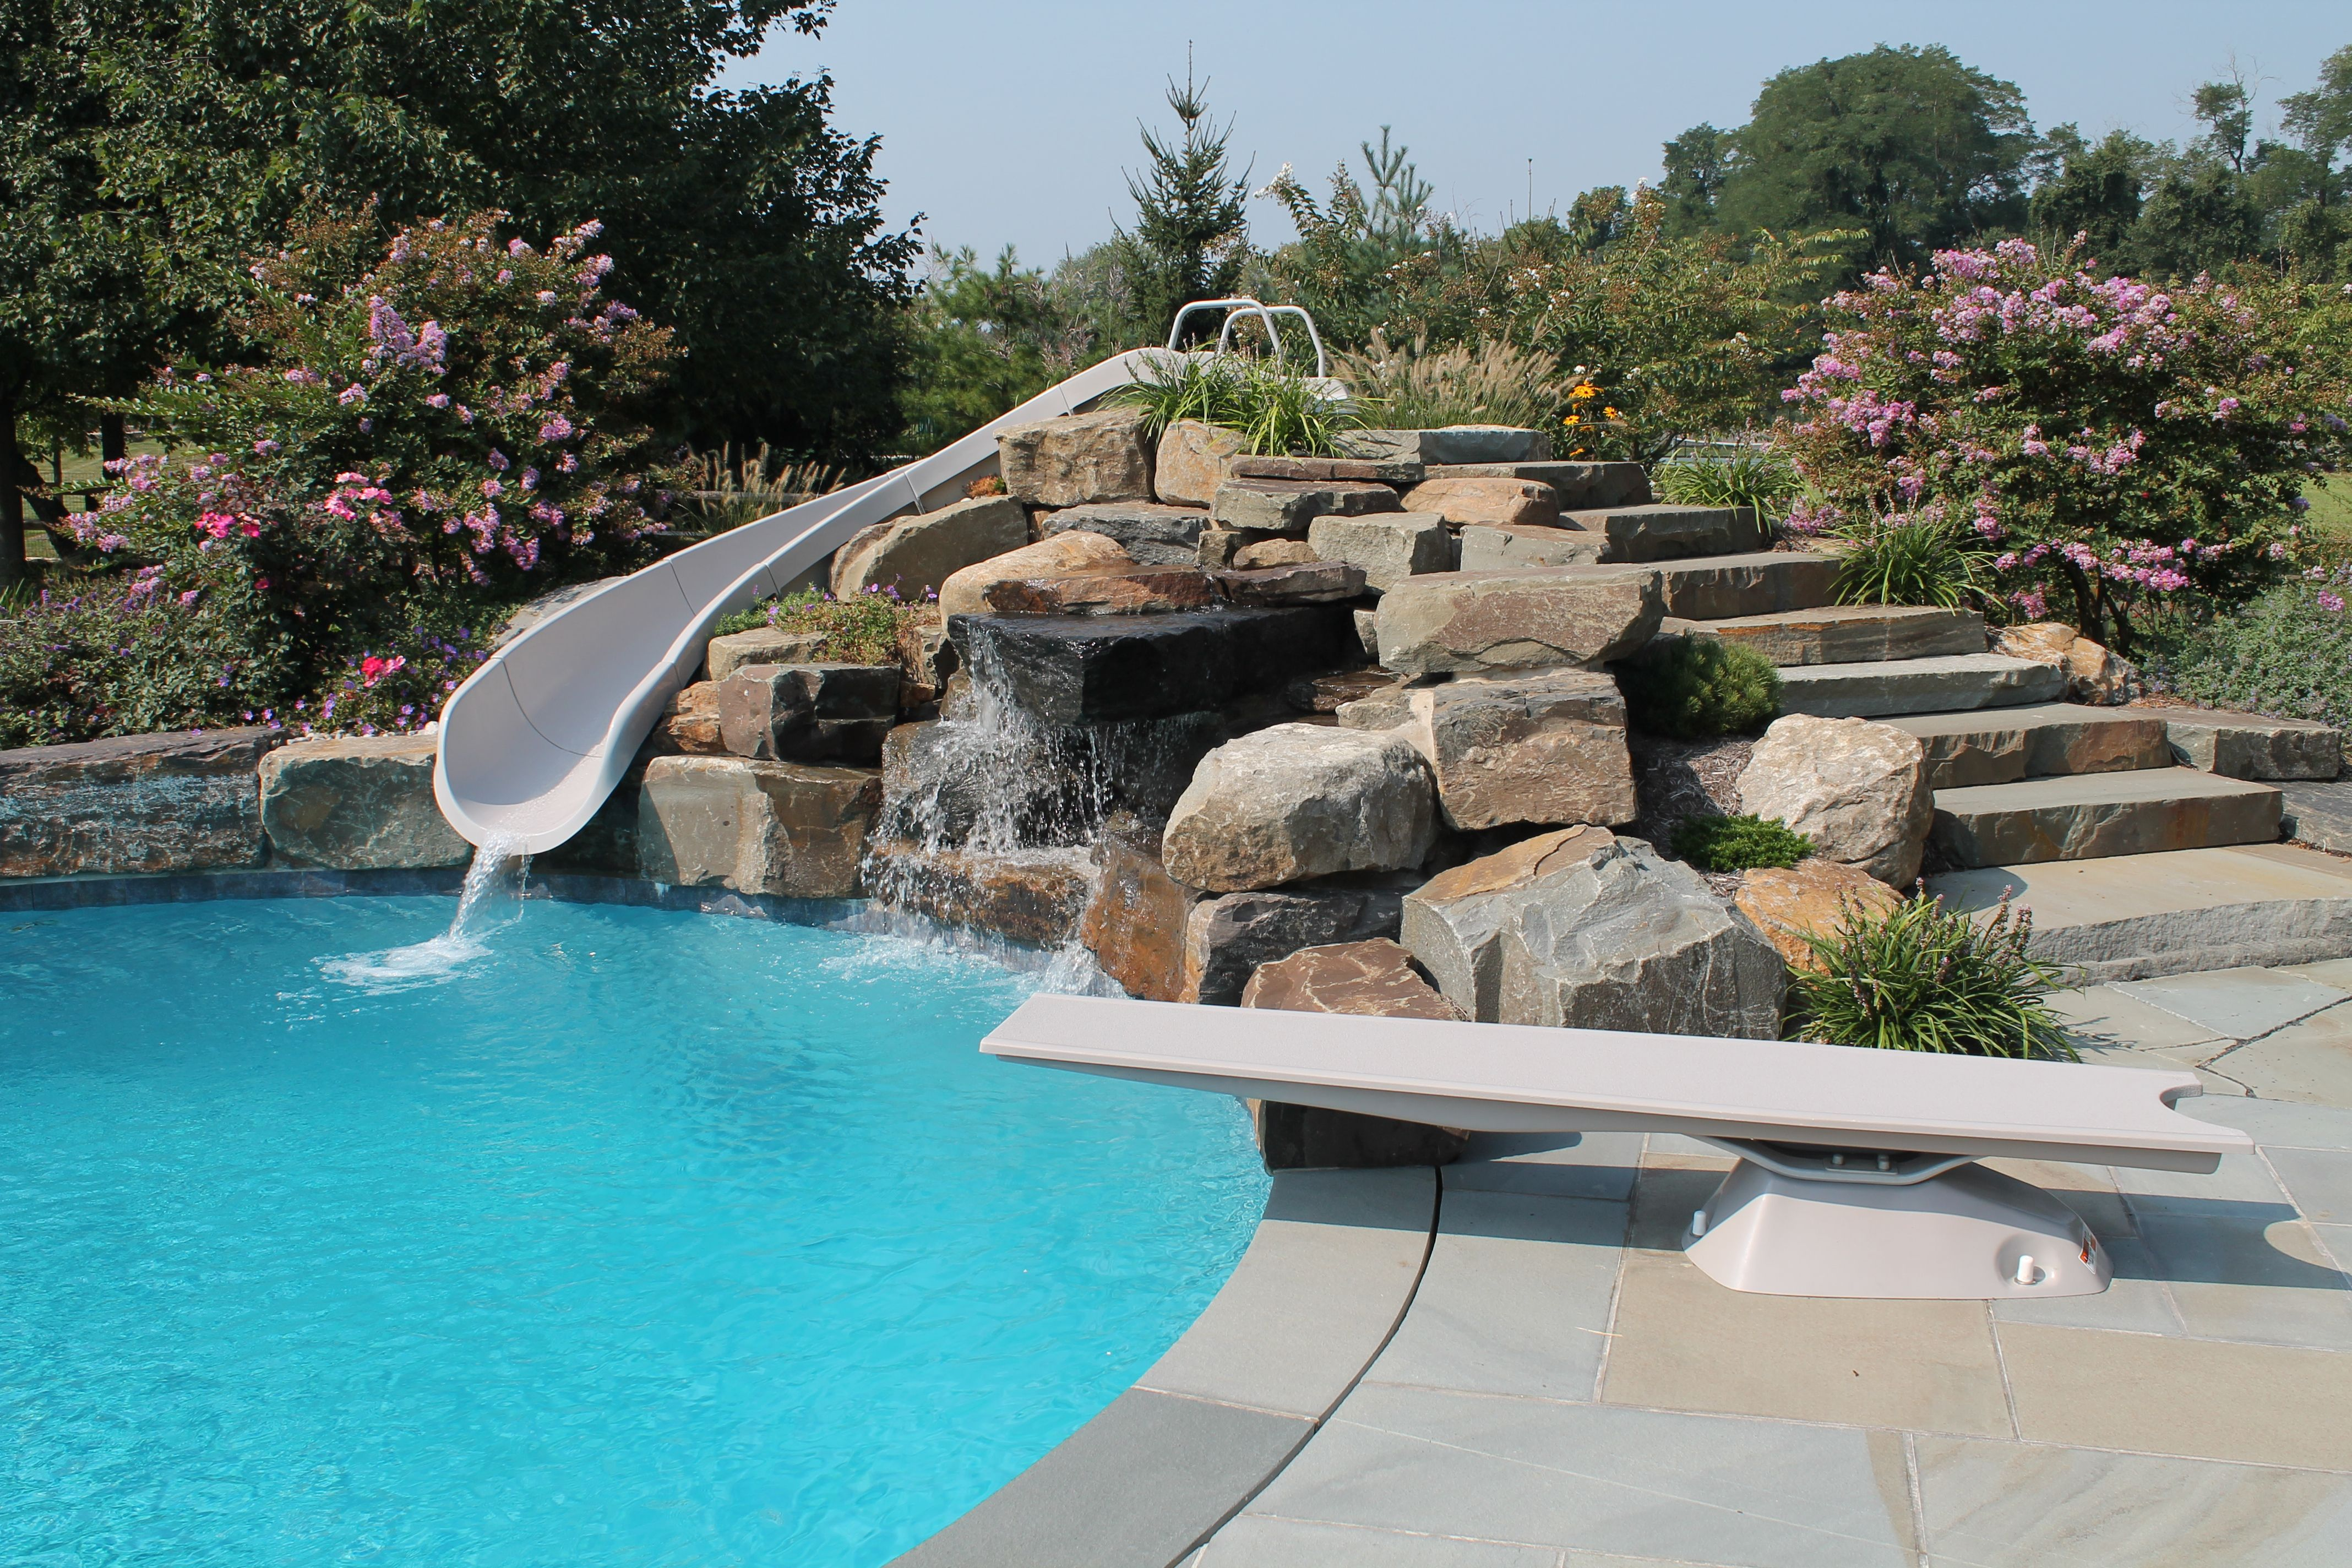 Custom Waterfall With Flume And Diving Board Aqua Bello Designs 215 353 0657 Pool Water Features Pool Designs Pool